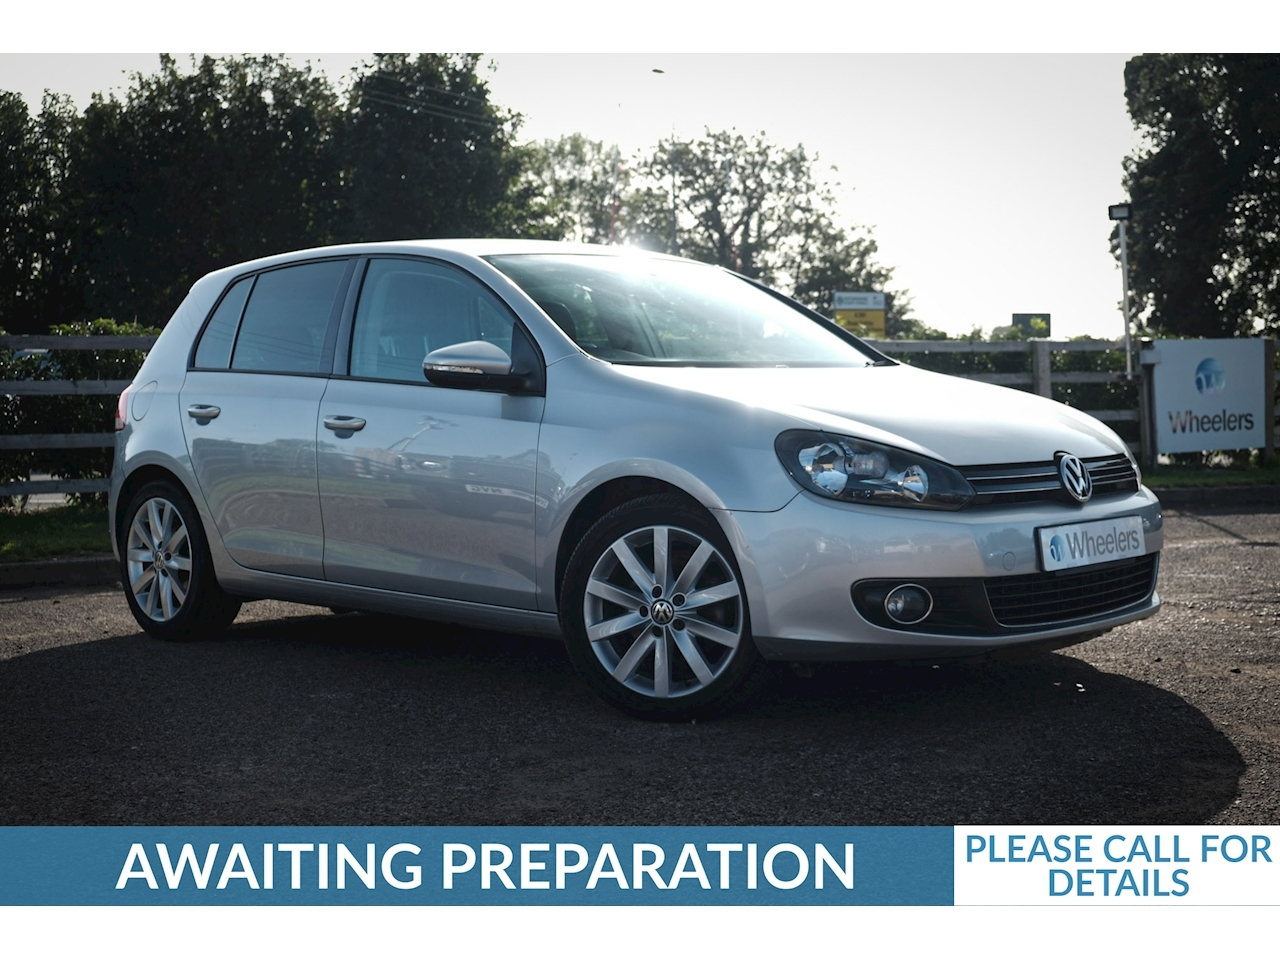 Volkswagen Golf Gt Tdi Hatchback 2.0 Manual Diesel